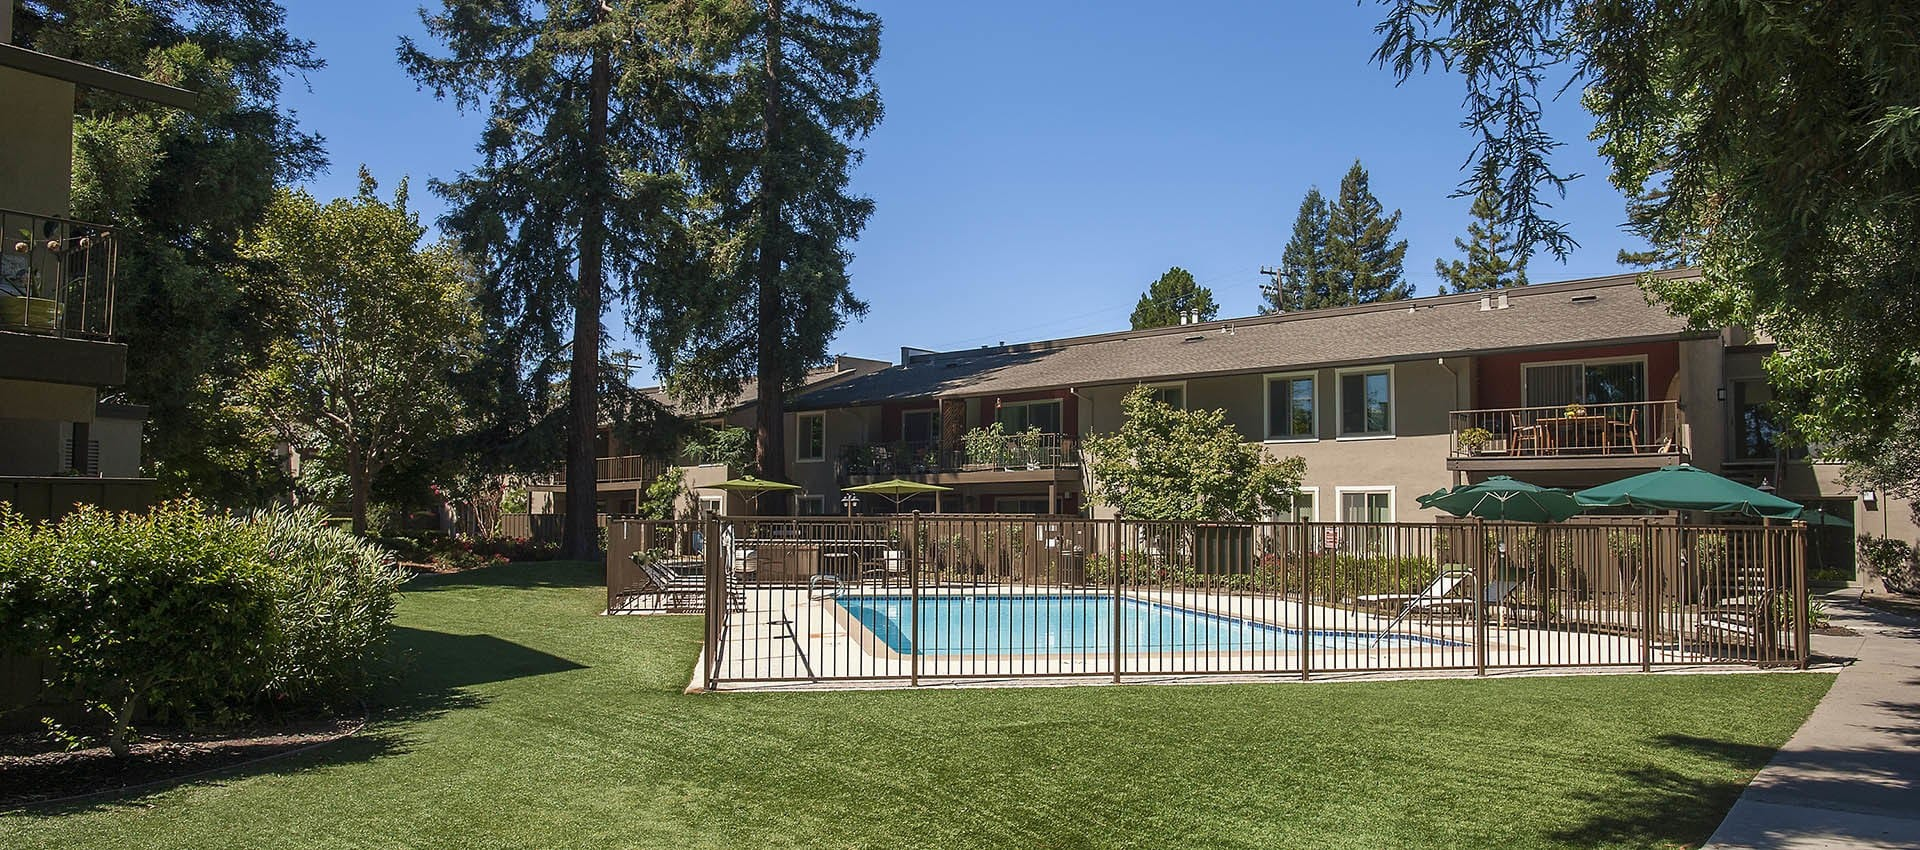 Swimming Pool Surrounded By Grass at Flora Condominium Rentals in Walnut Creek, California